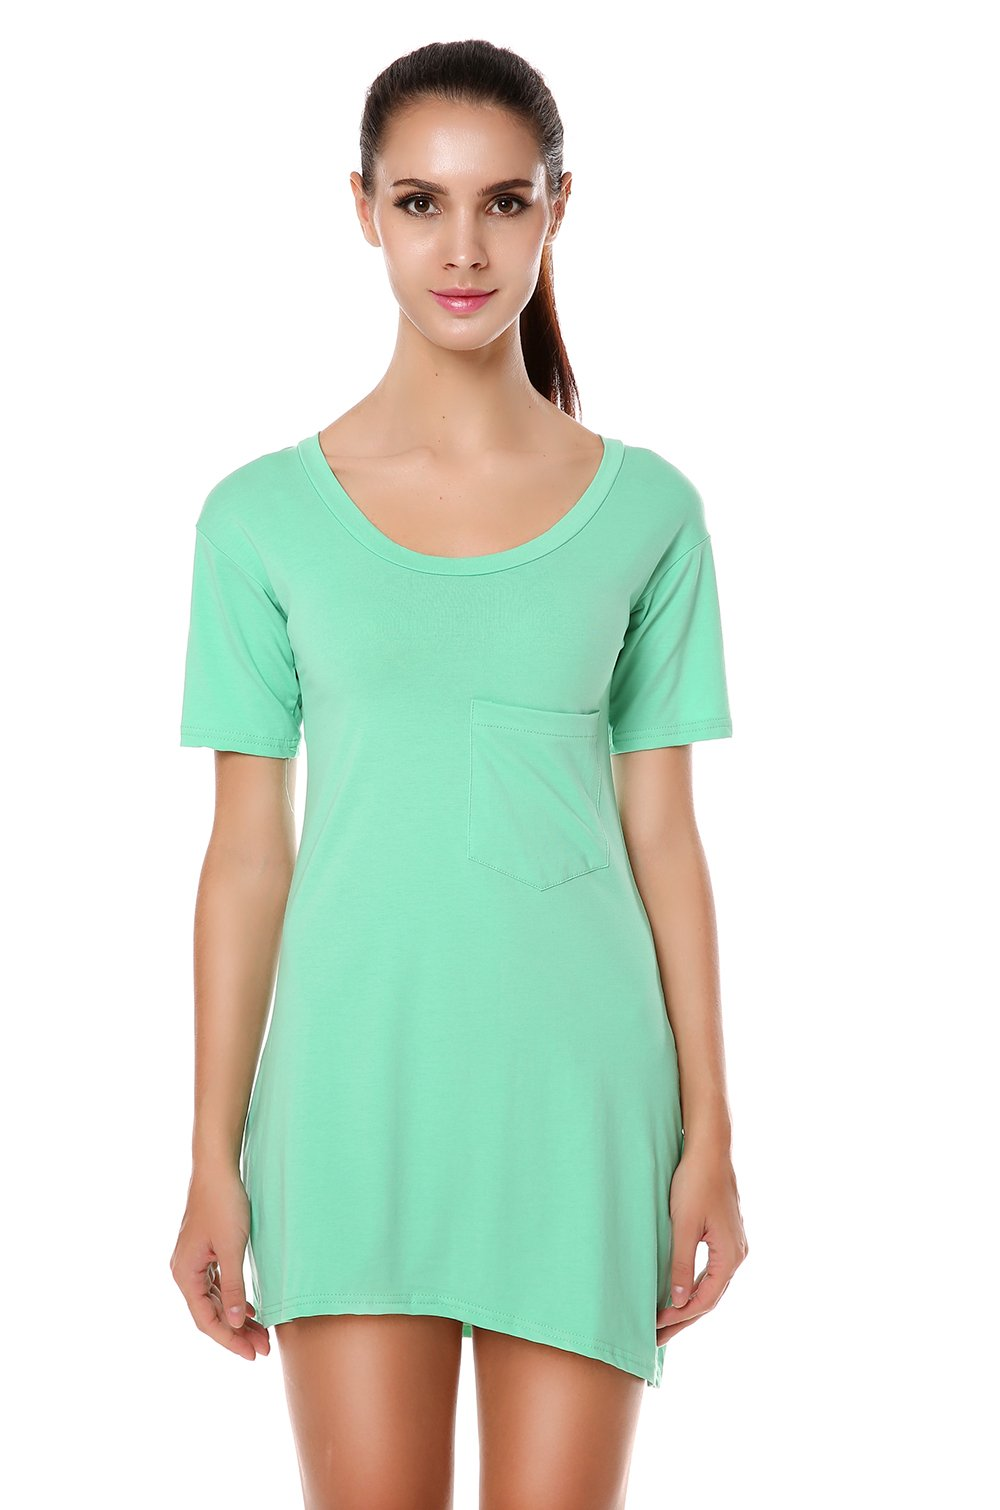 Meaneor Women\'s Short Sleeve Loose Long T-Shirts Top Blouse Shirts Plus Green